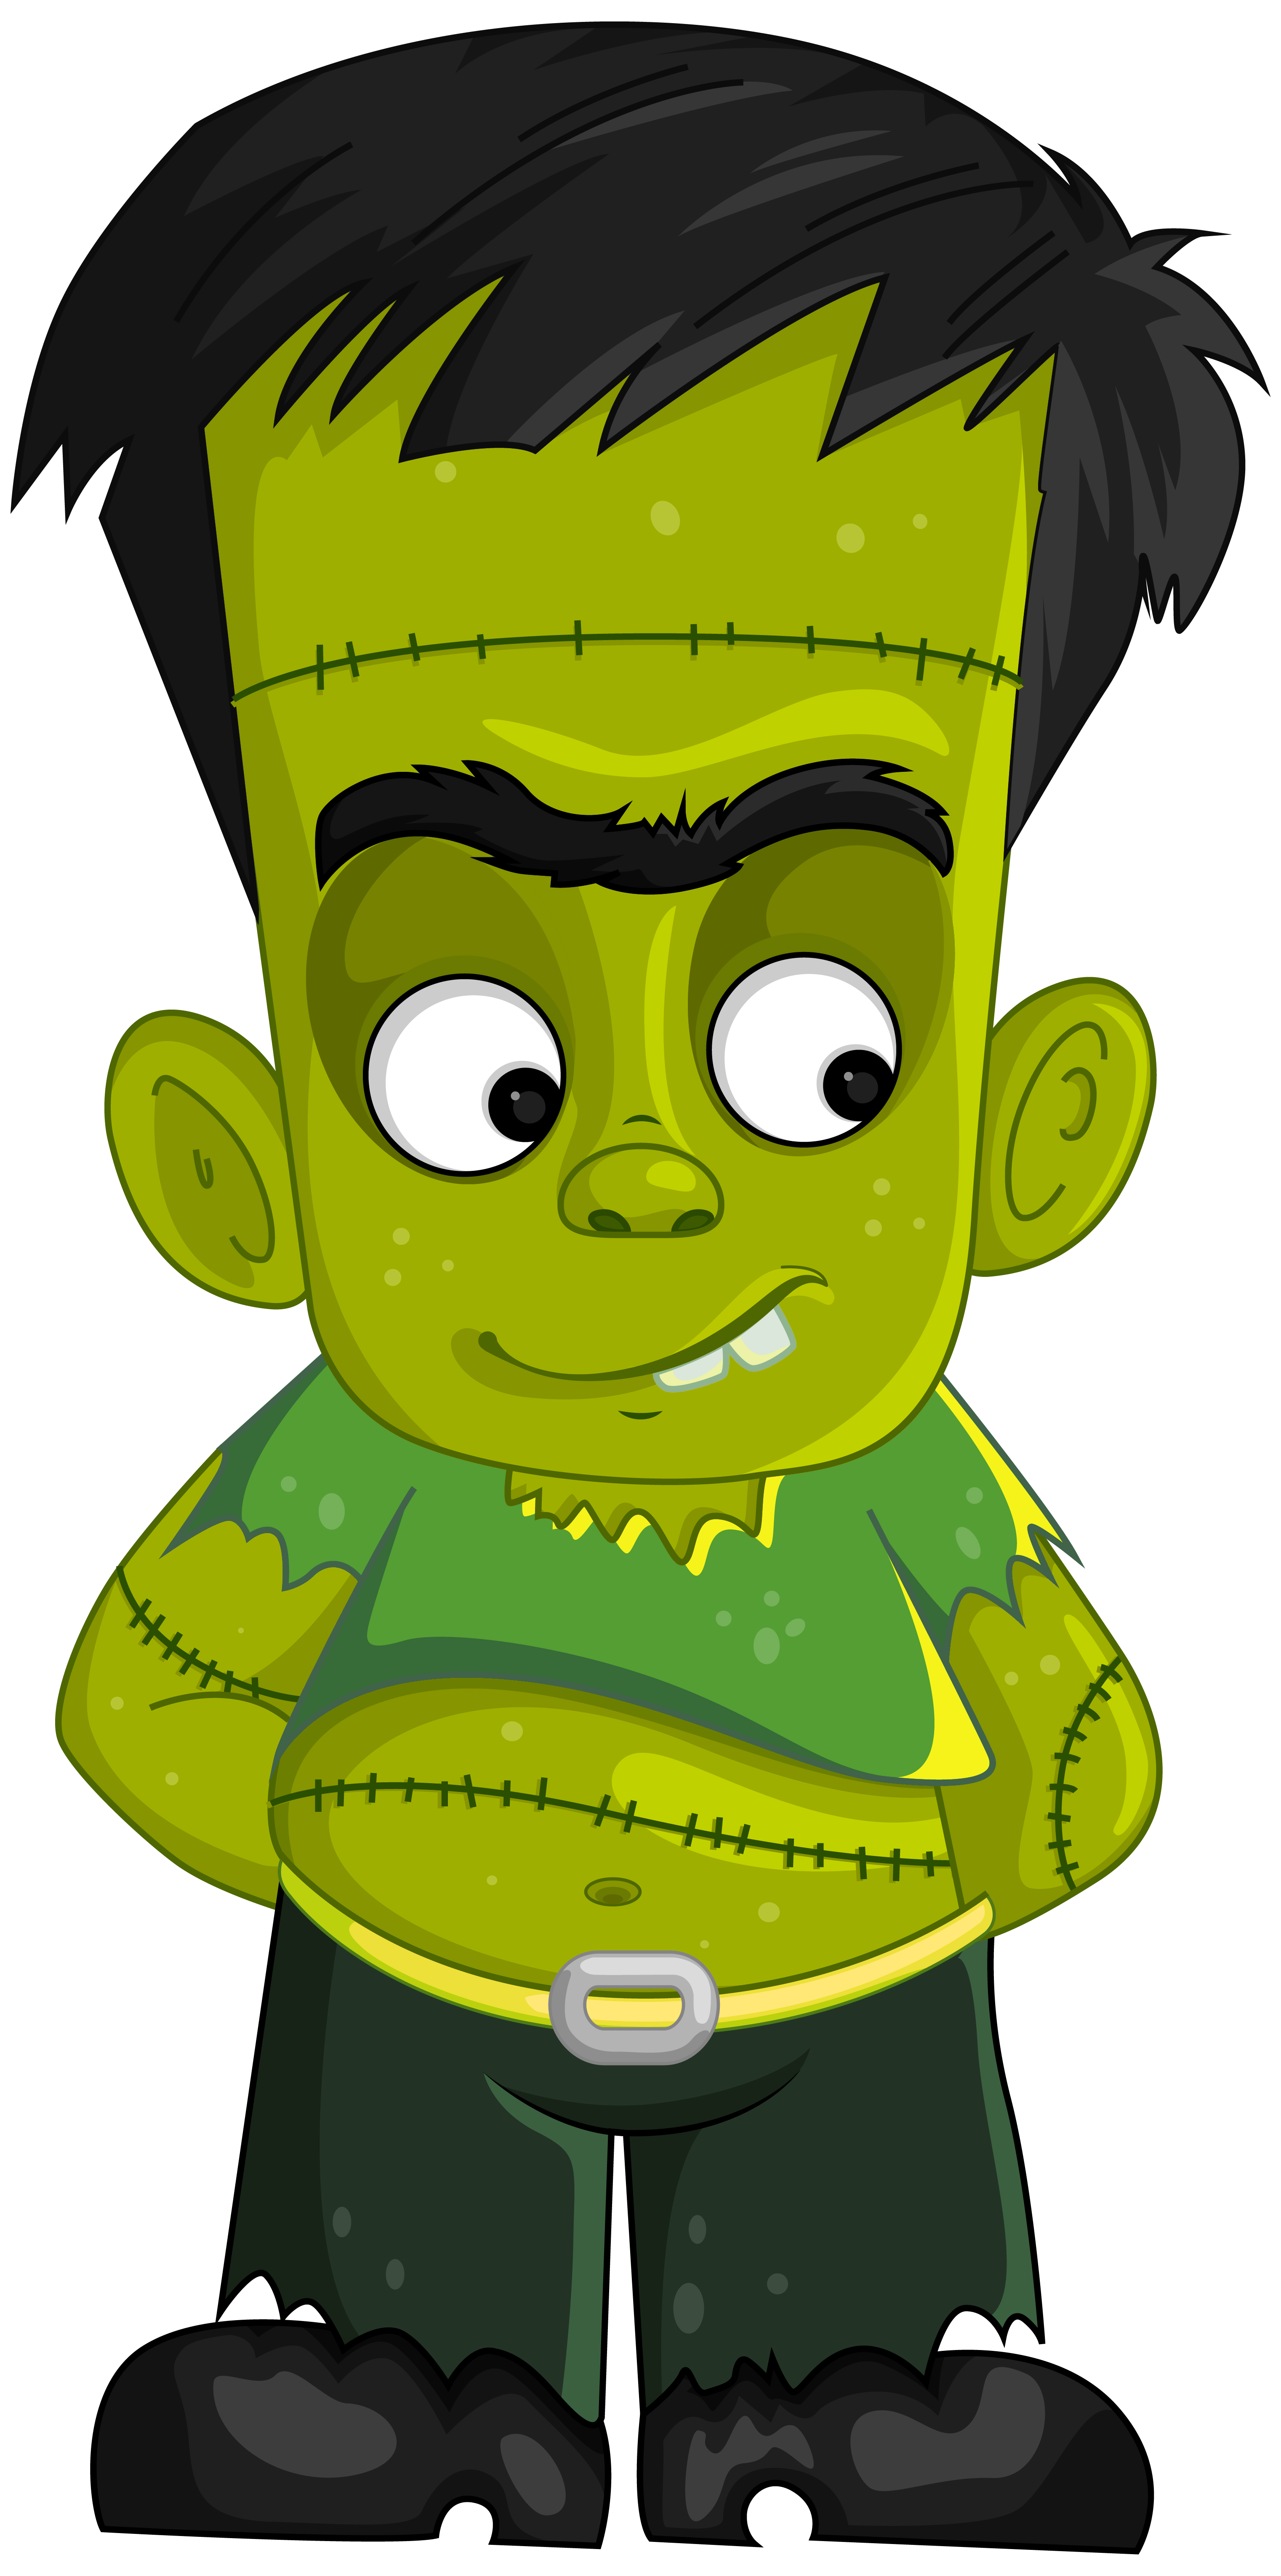 Frankenstein clipart cartoon frankenstein. Collection of transparent